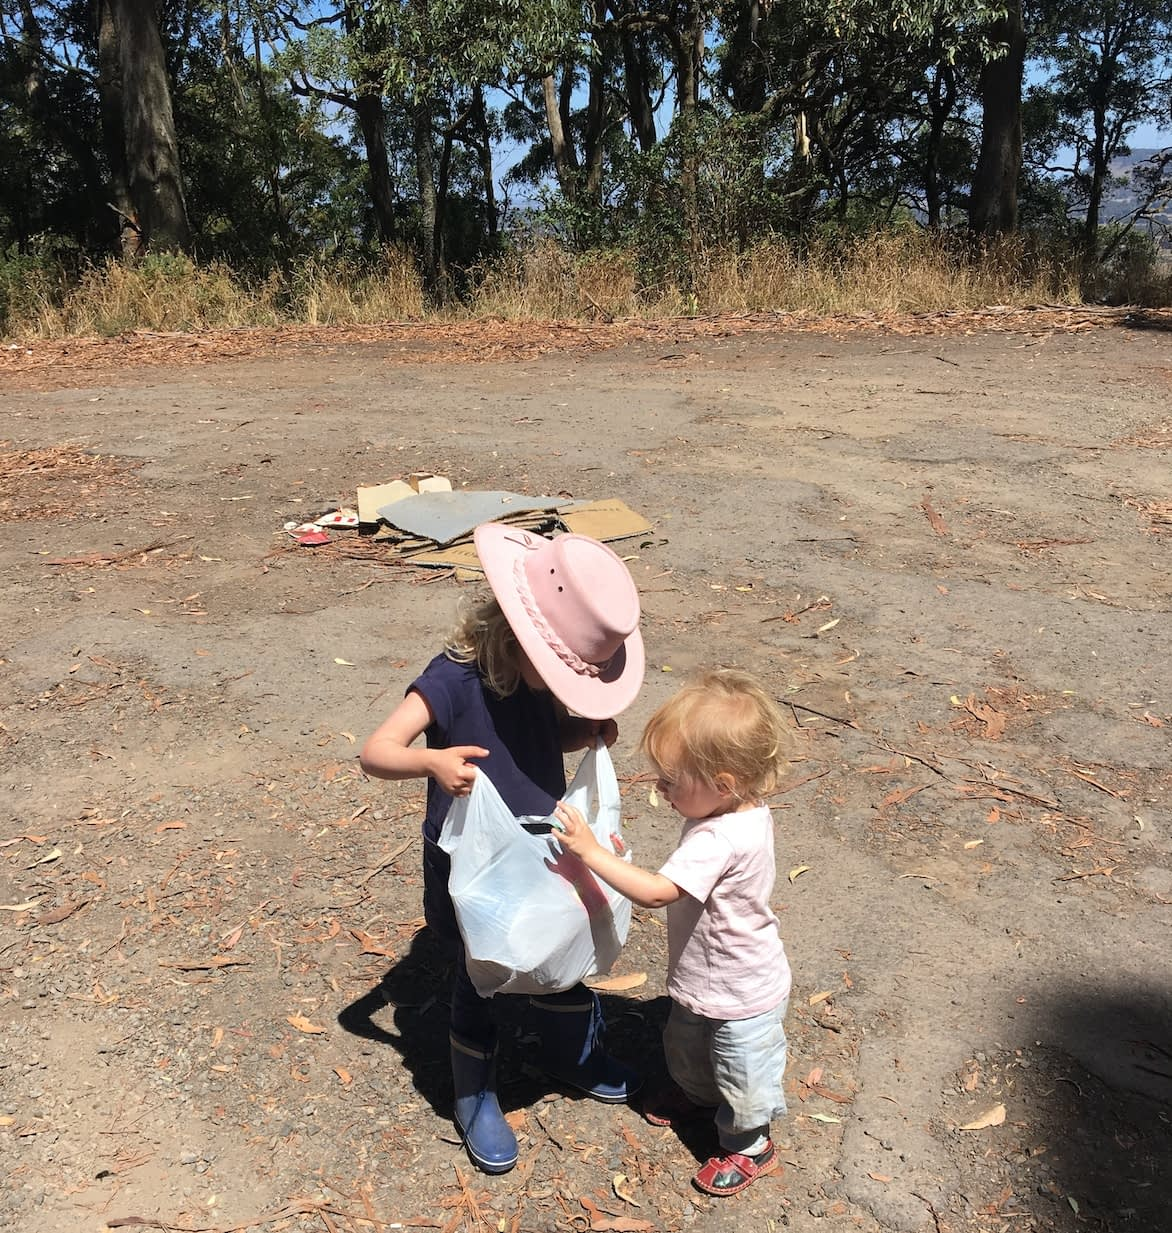 5 Ways to Teach Children About Caring for the Earth